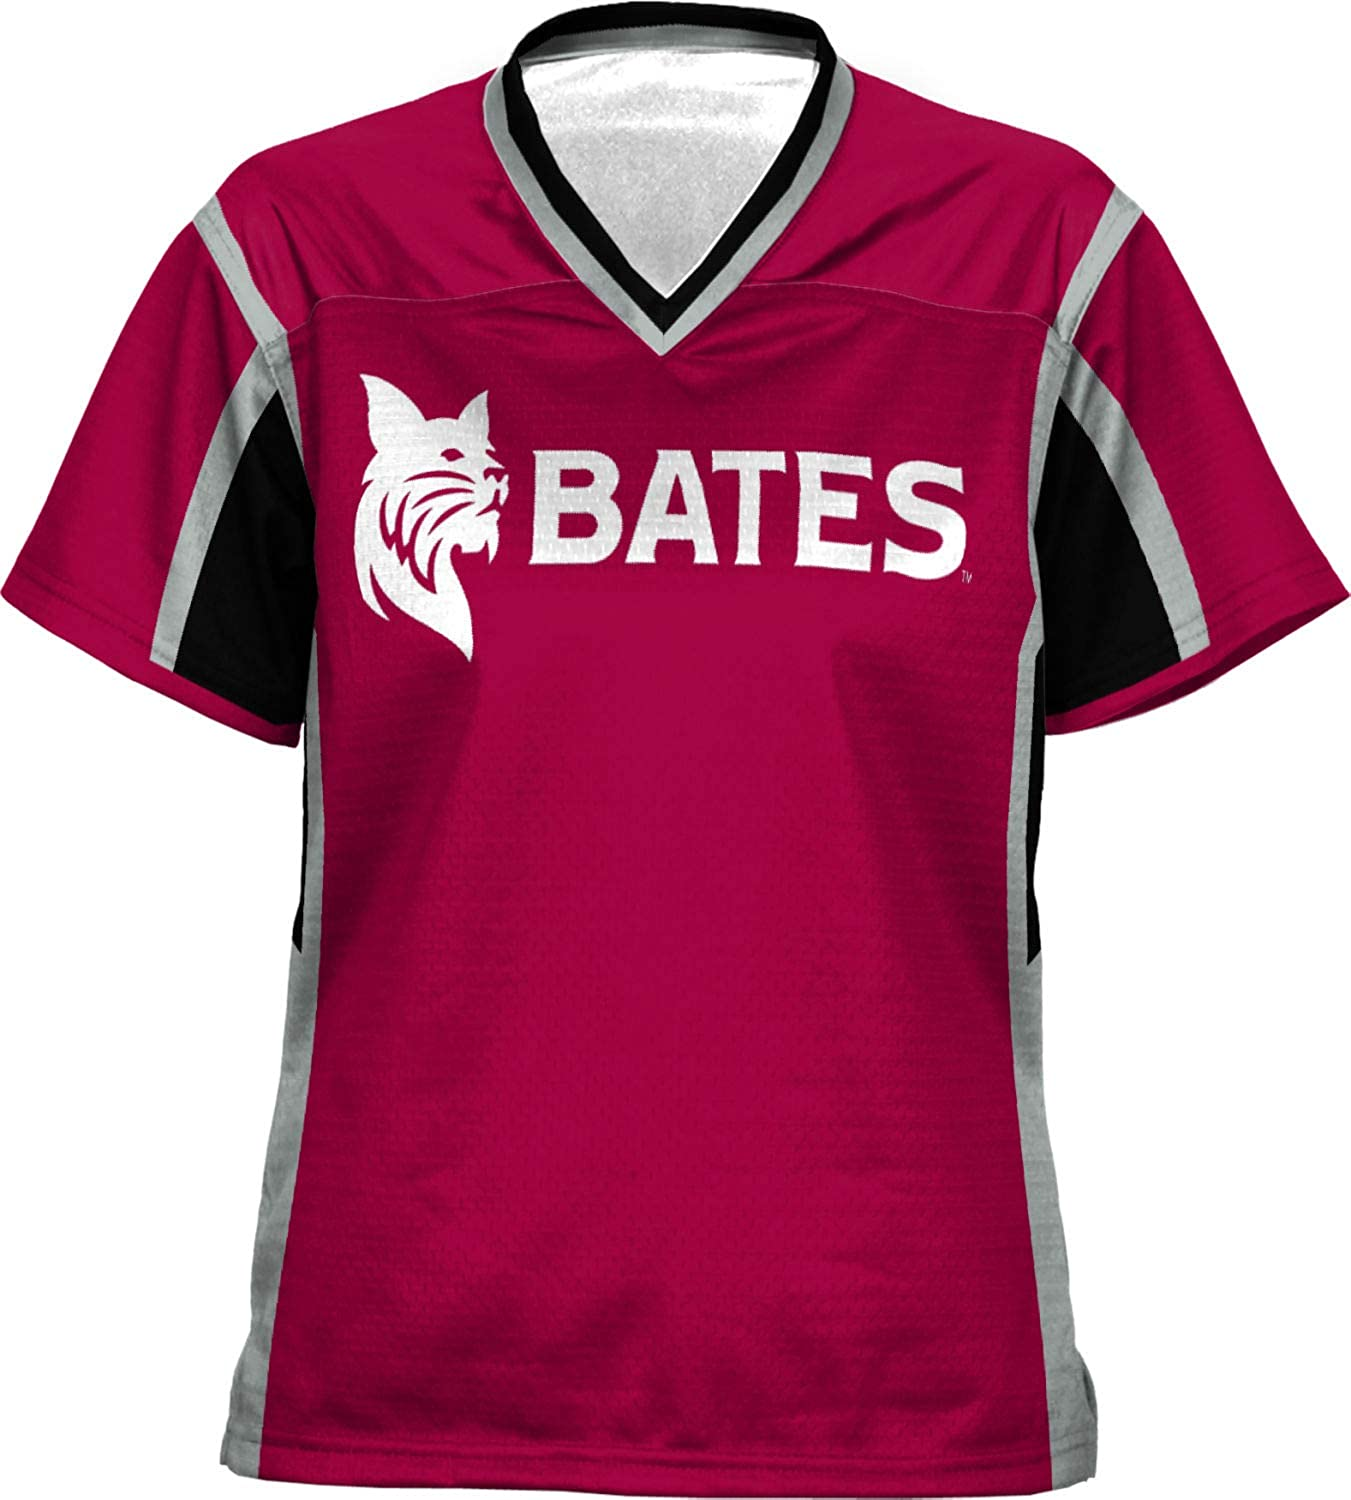 ProSphere Max 60% OFF Bates College Women's Los Angeles Mall Scramble Football Jersey